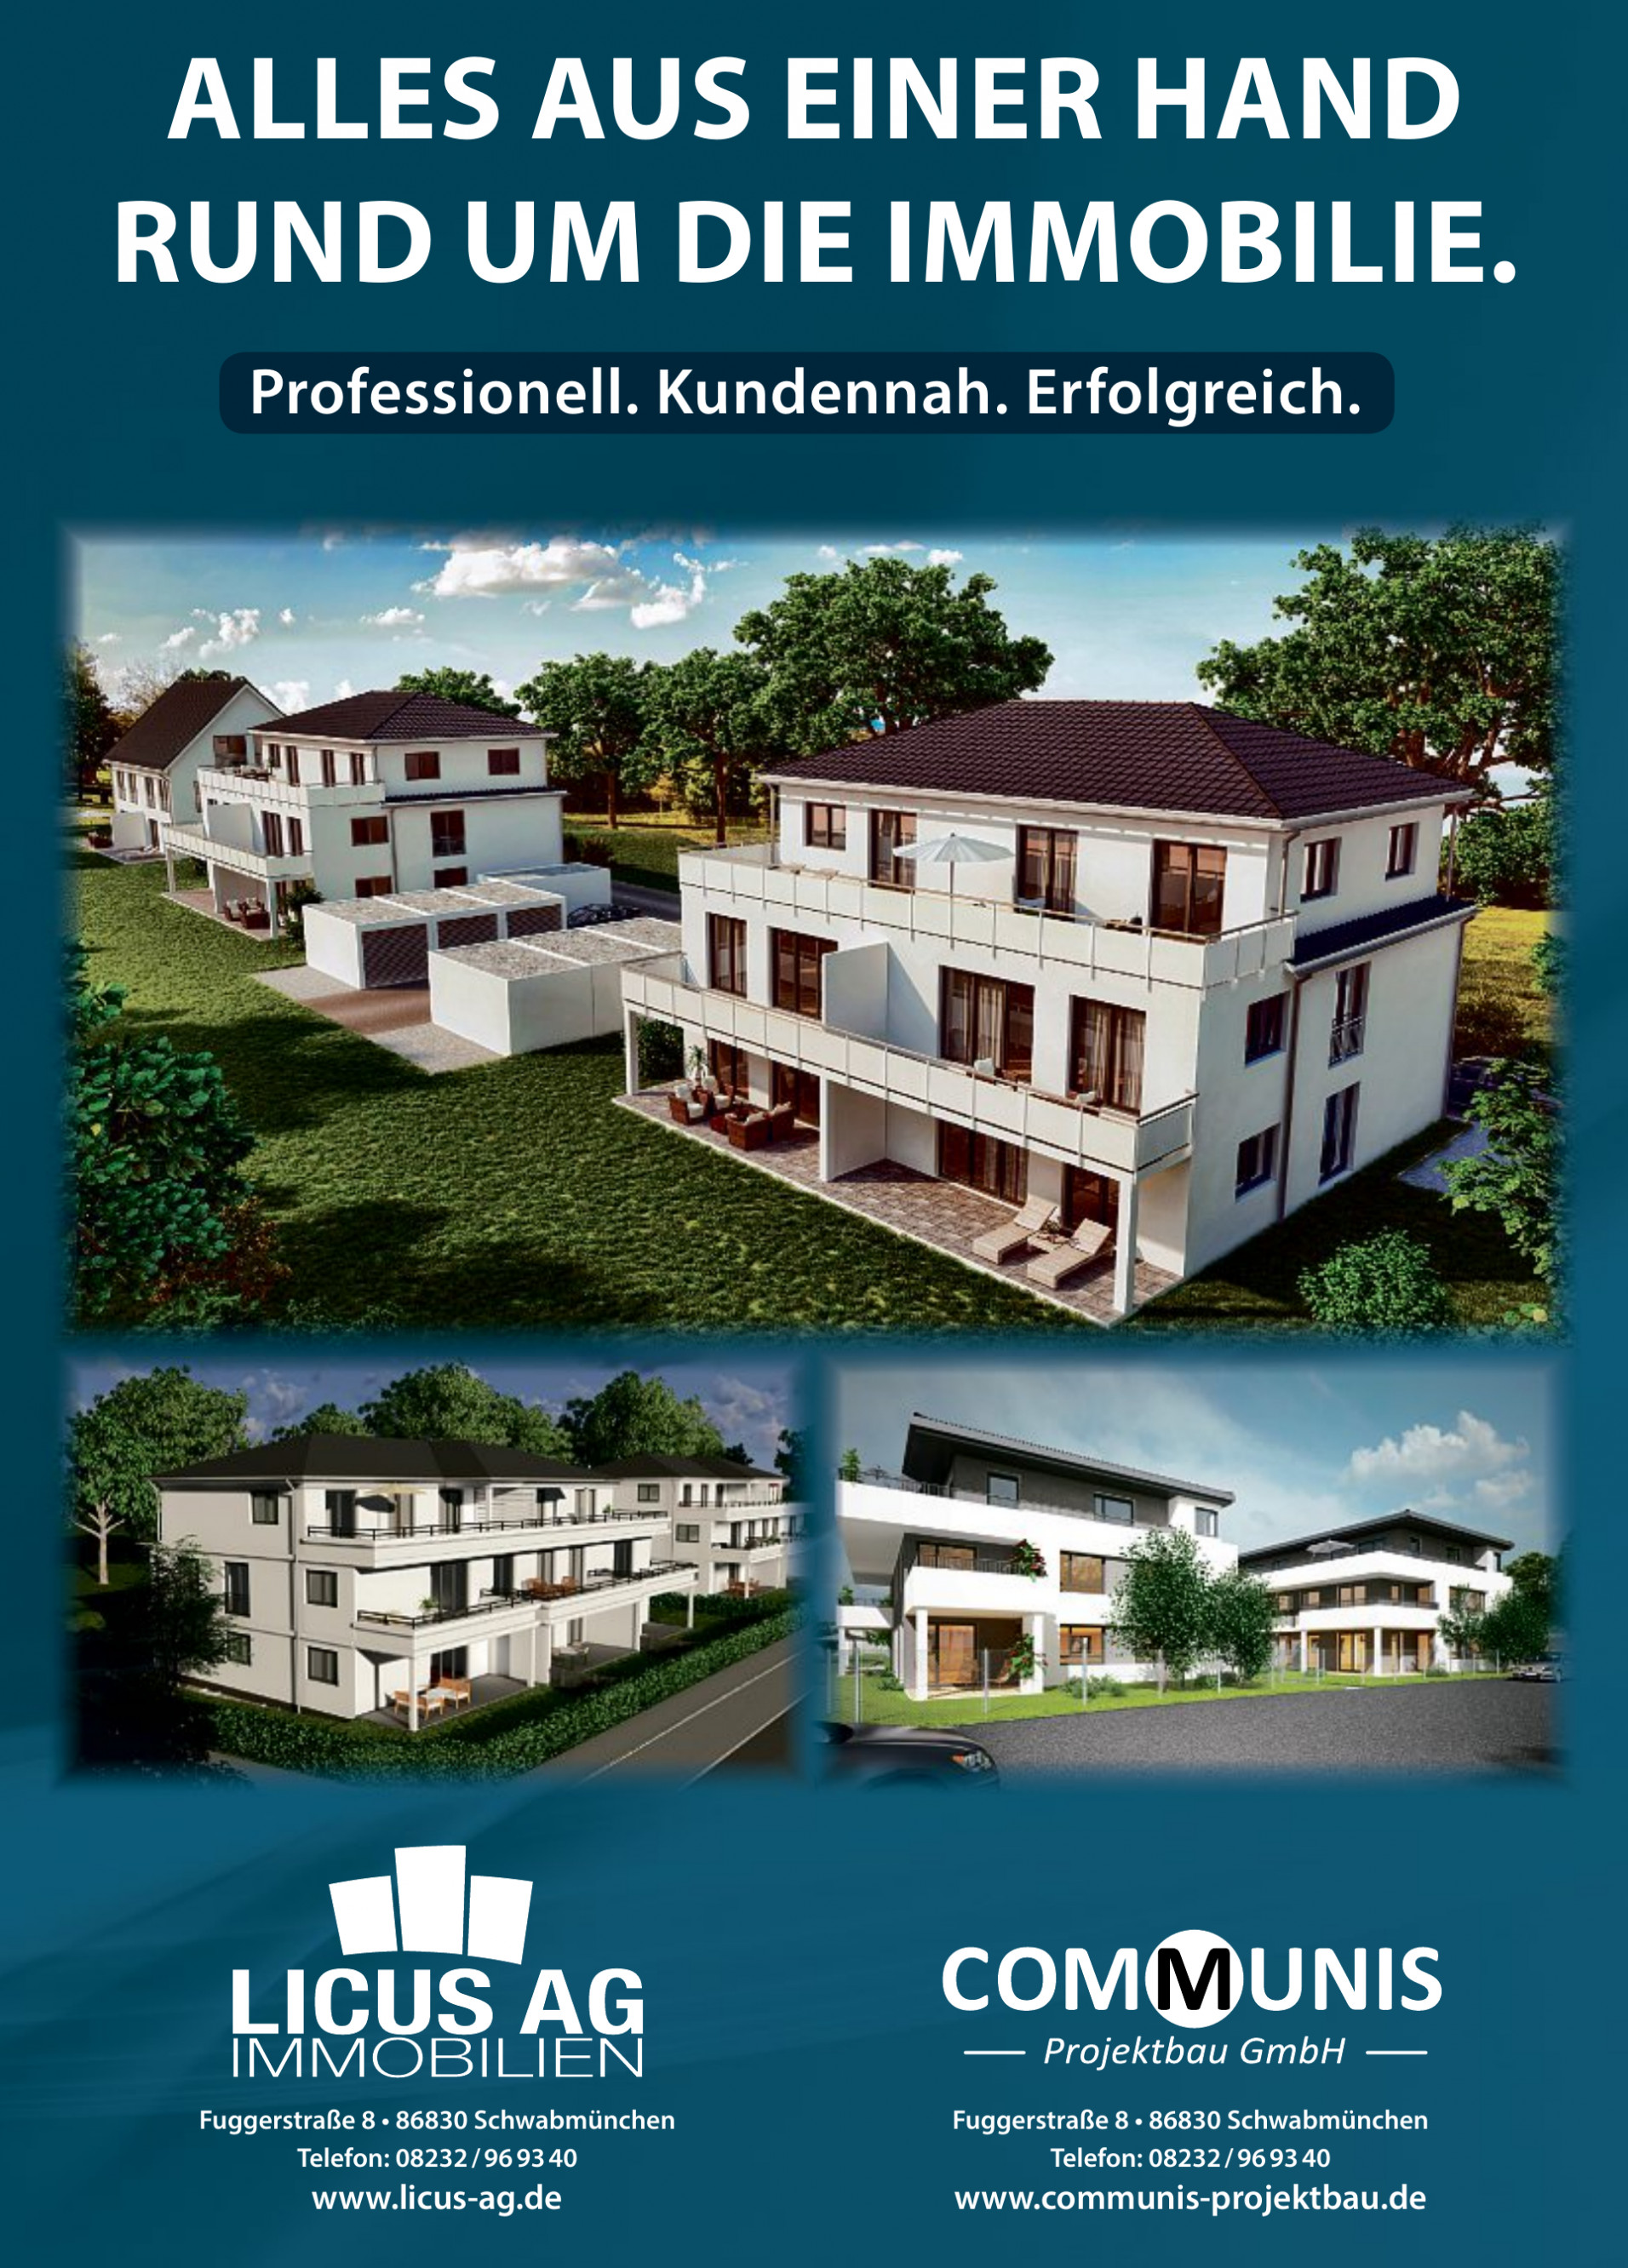 Licus AG Immobilien